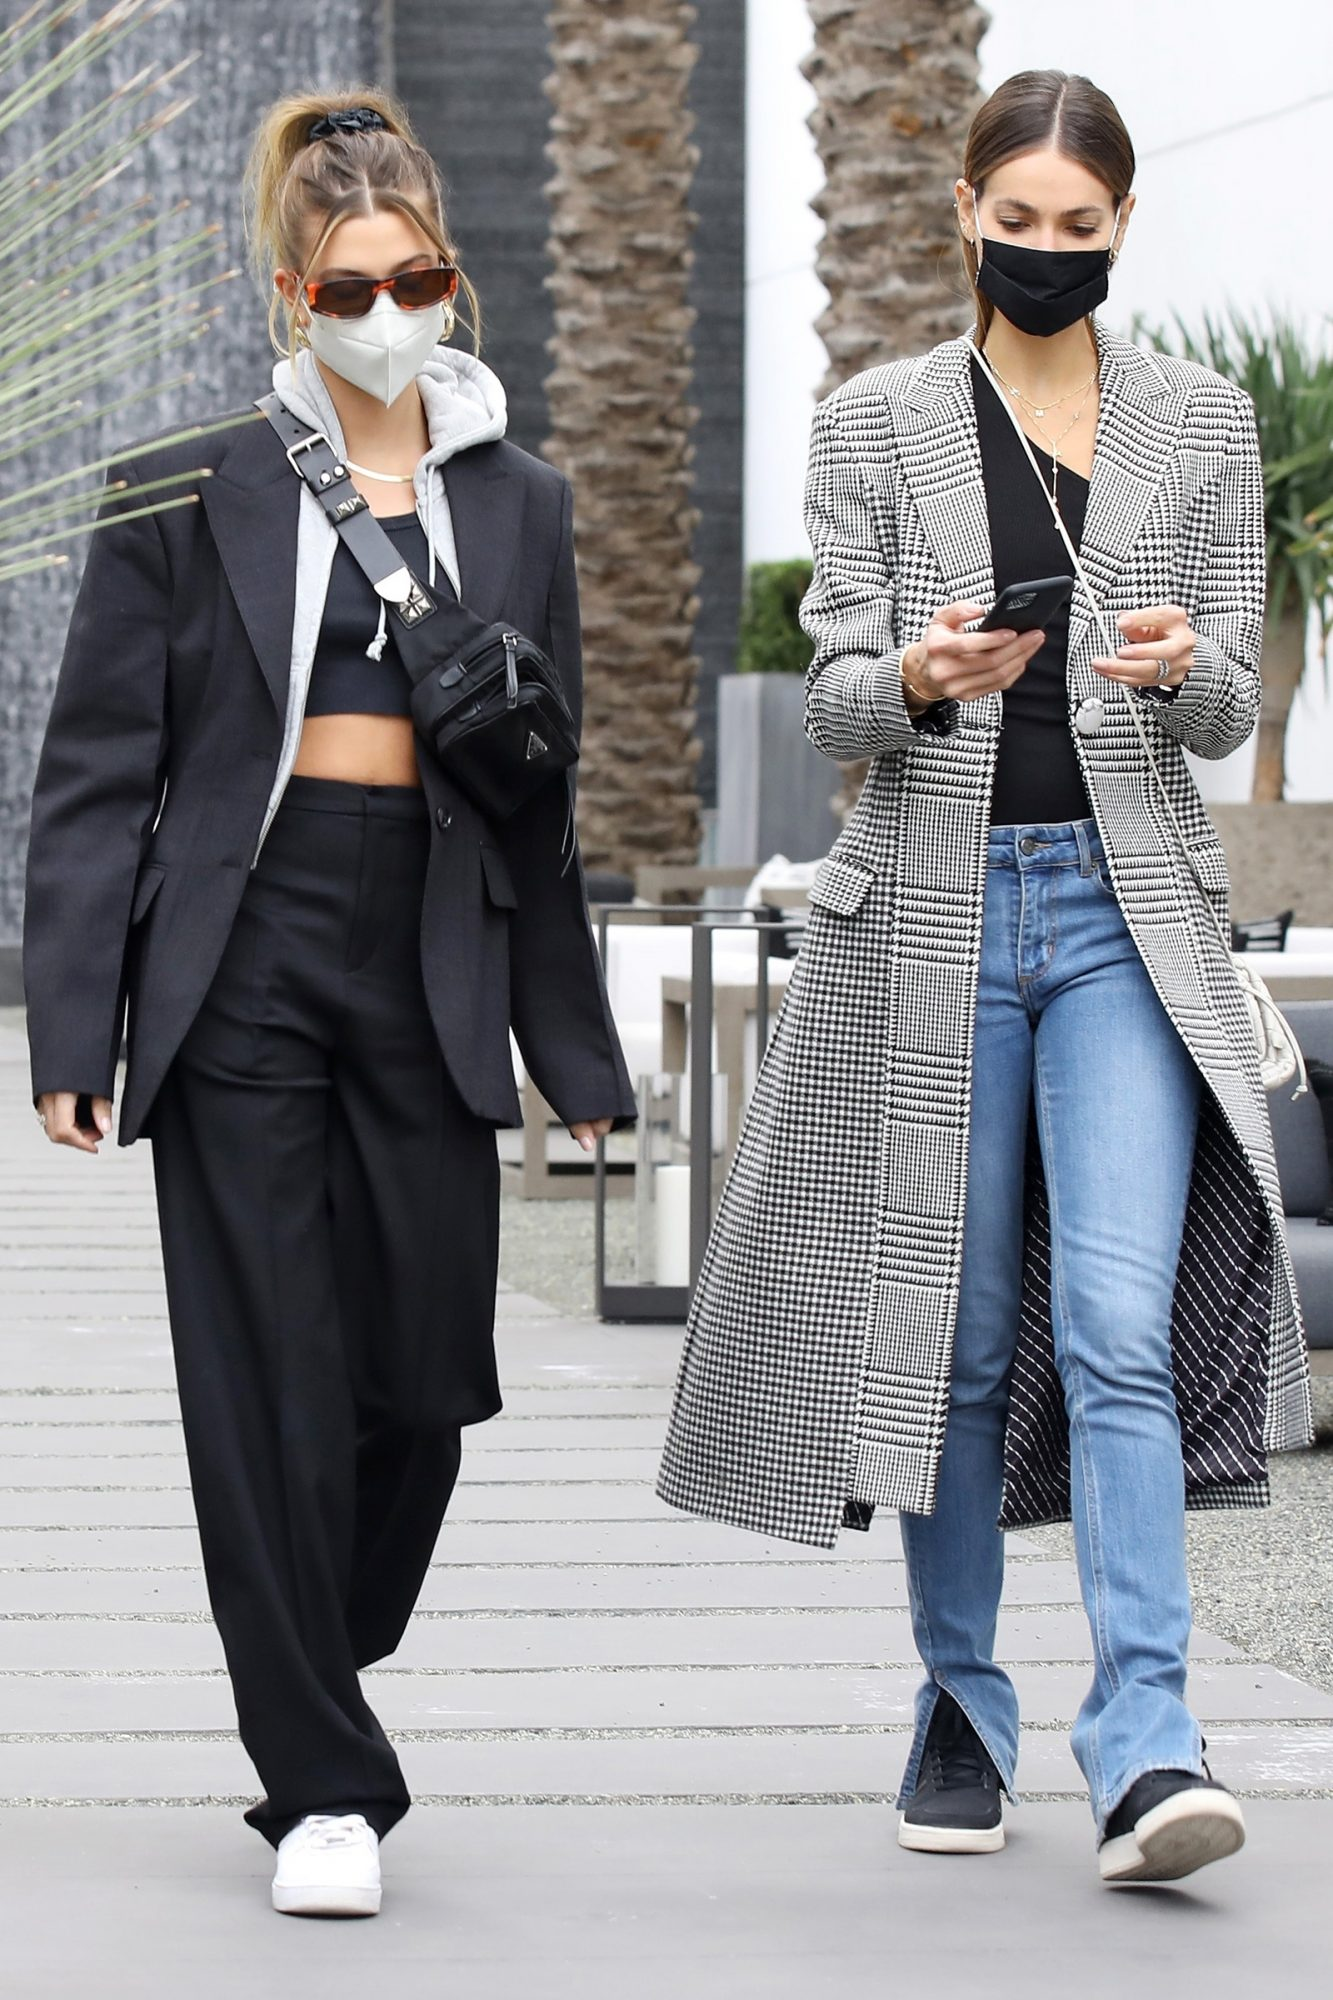 Hailey Bieber goes furniture shopping with her model friend Sara Sampaio